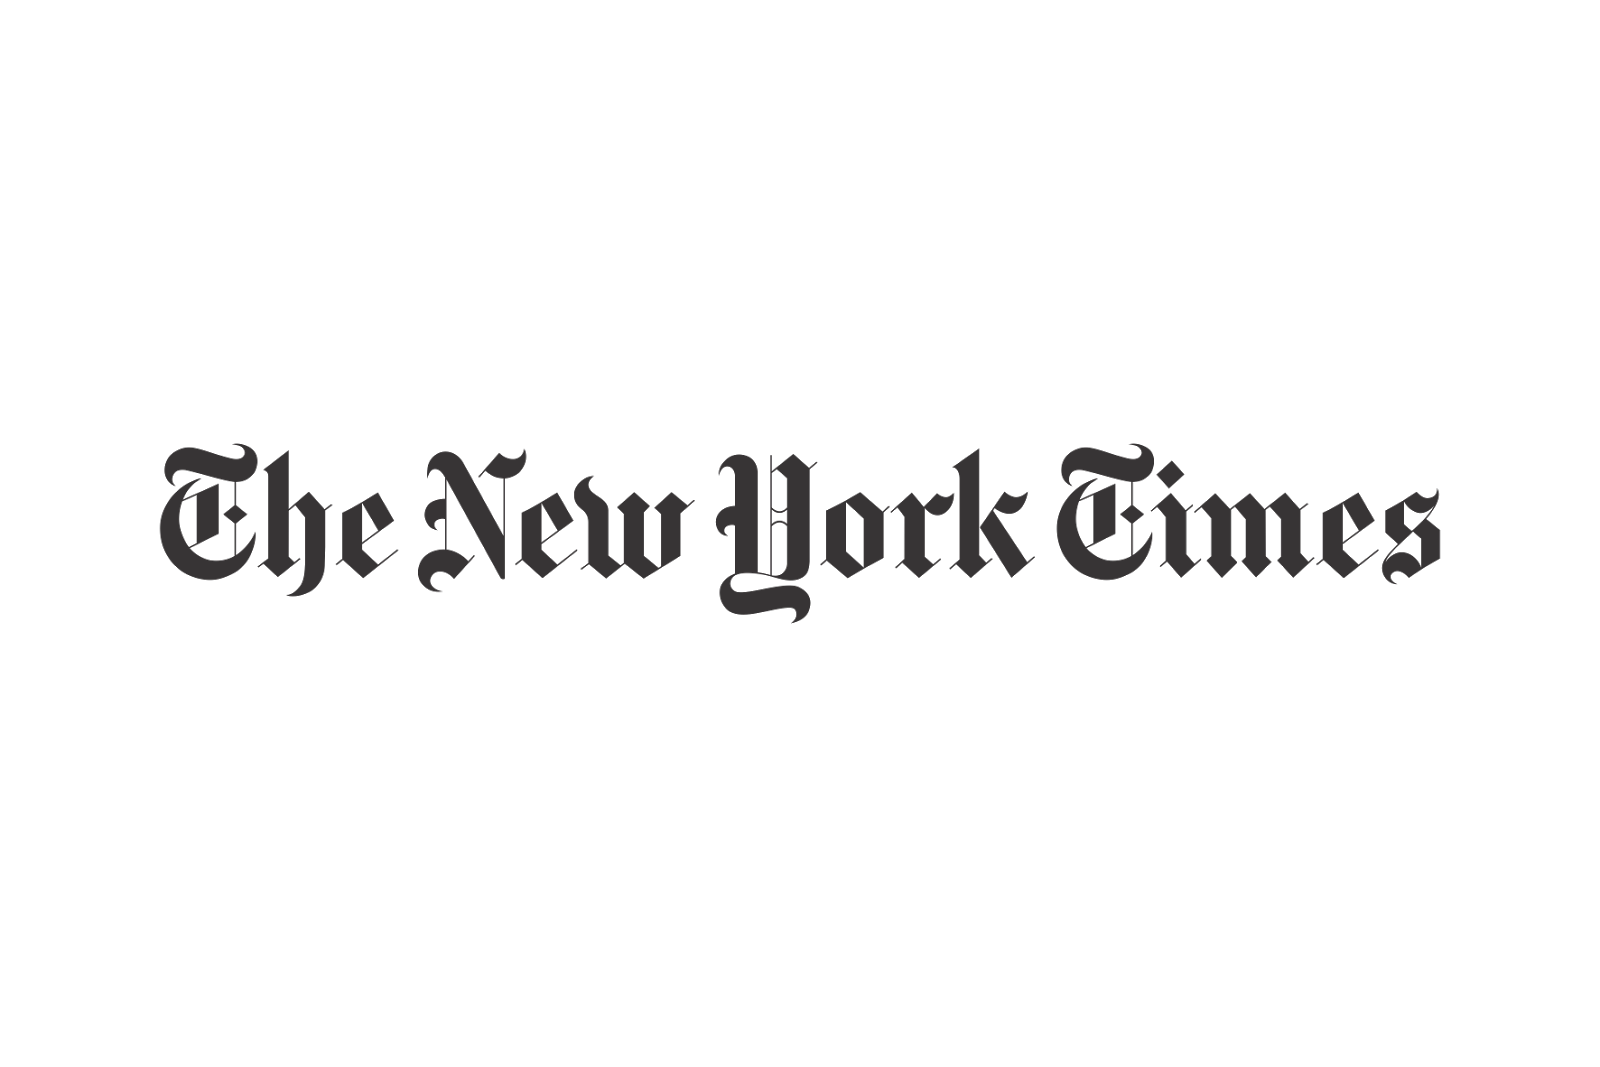 Francois Illas New Tradition: The New York Times Logo